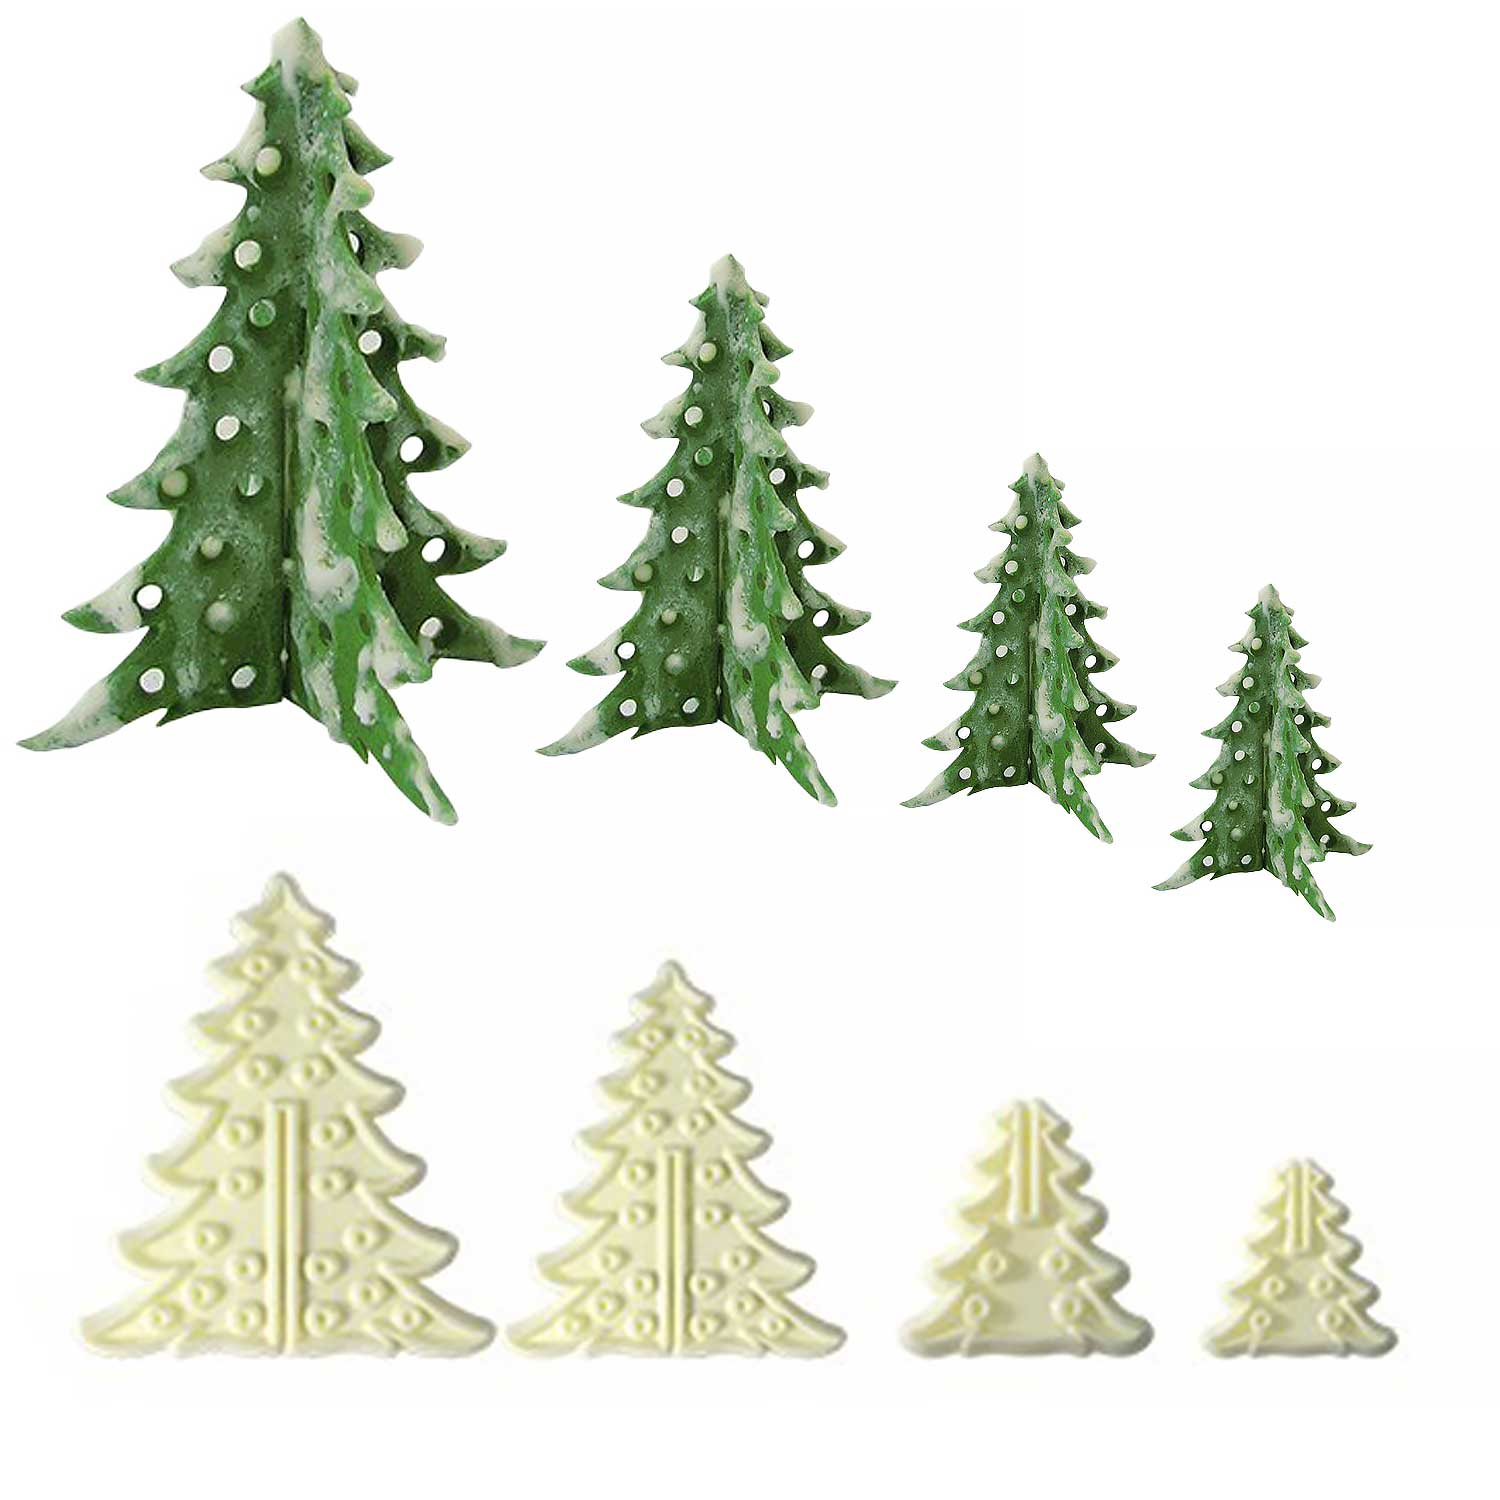 3D Christmas Trees Cutter Set